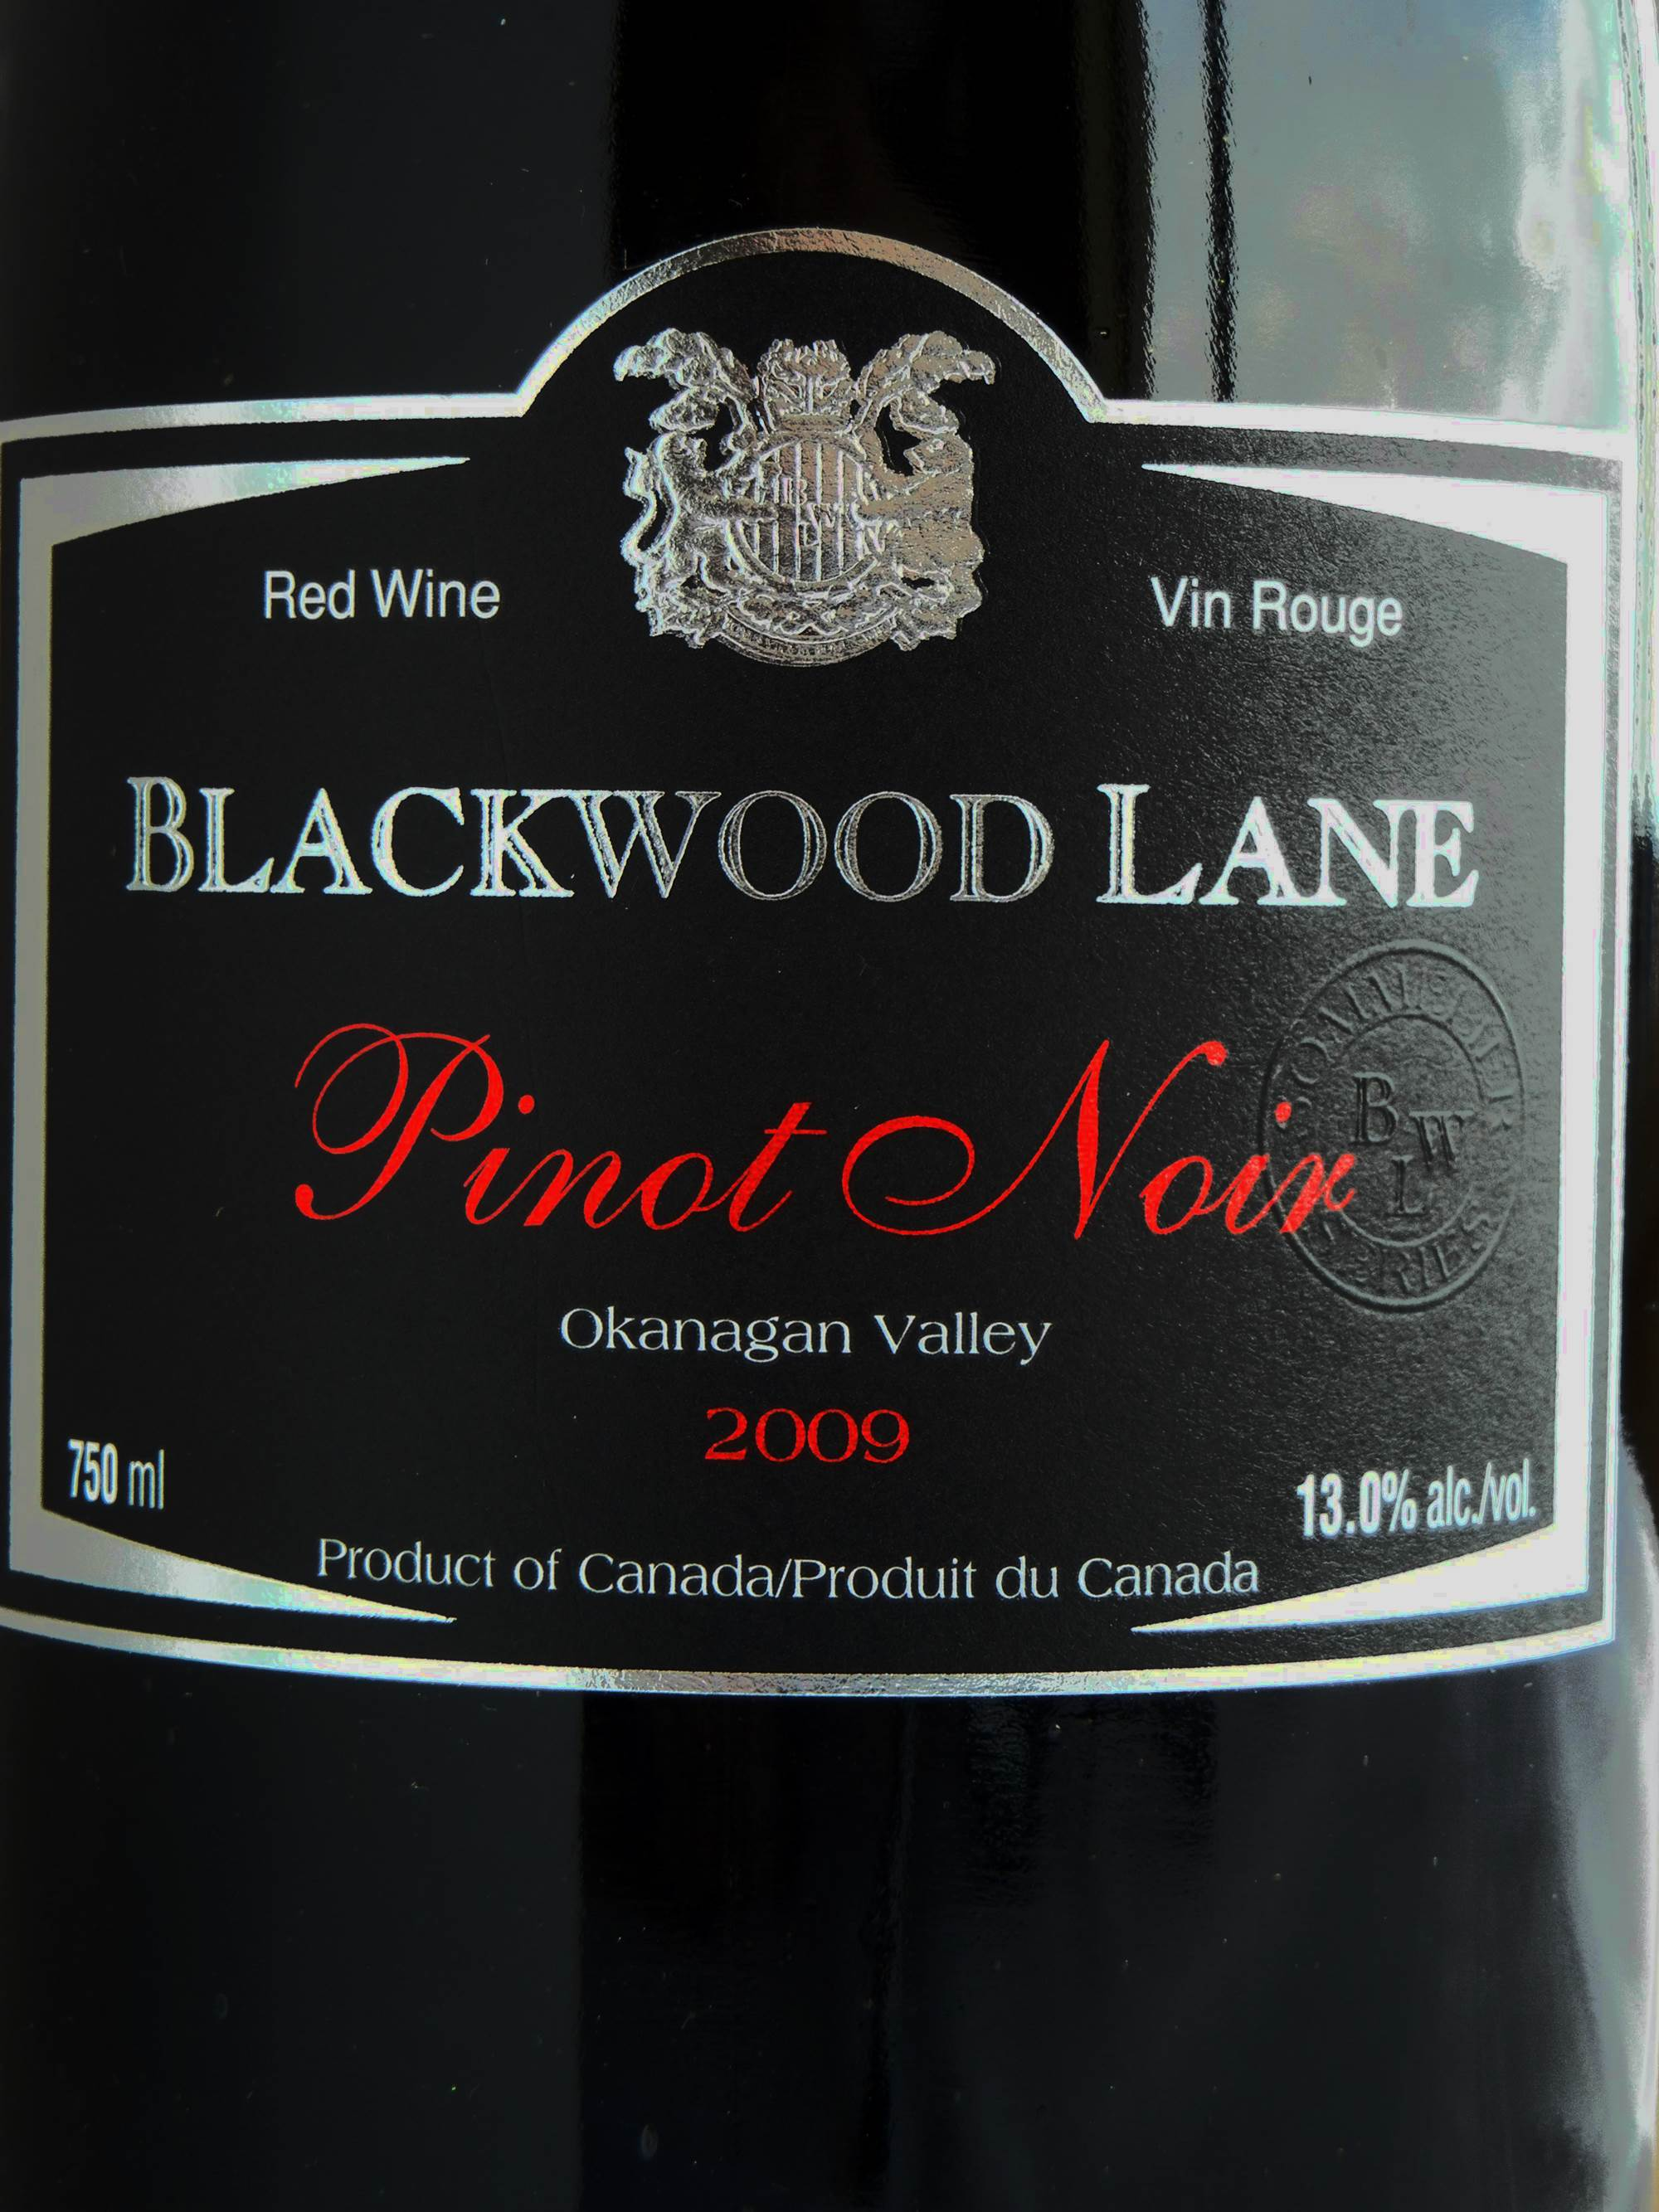 Blackwood Lane Pinot Noir 2009 Label - BC Pinot Noir Tasting Review 15